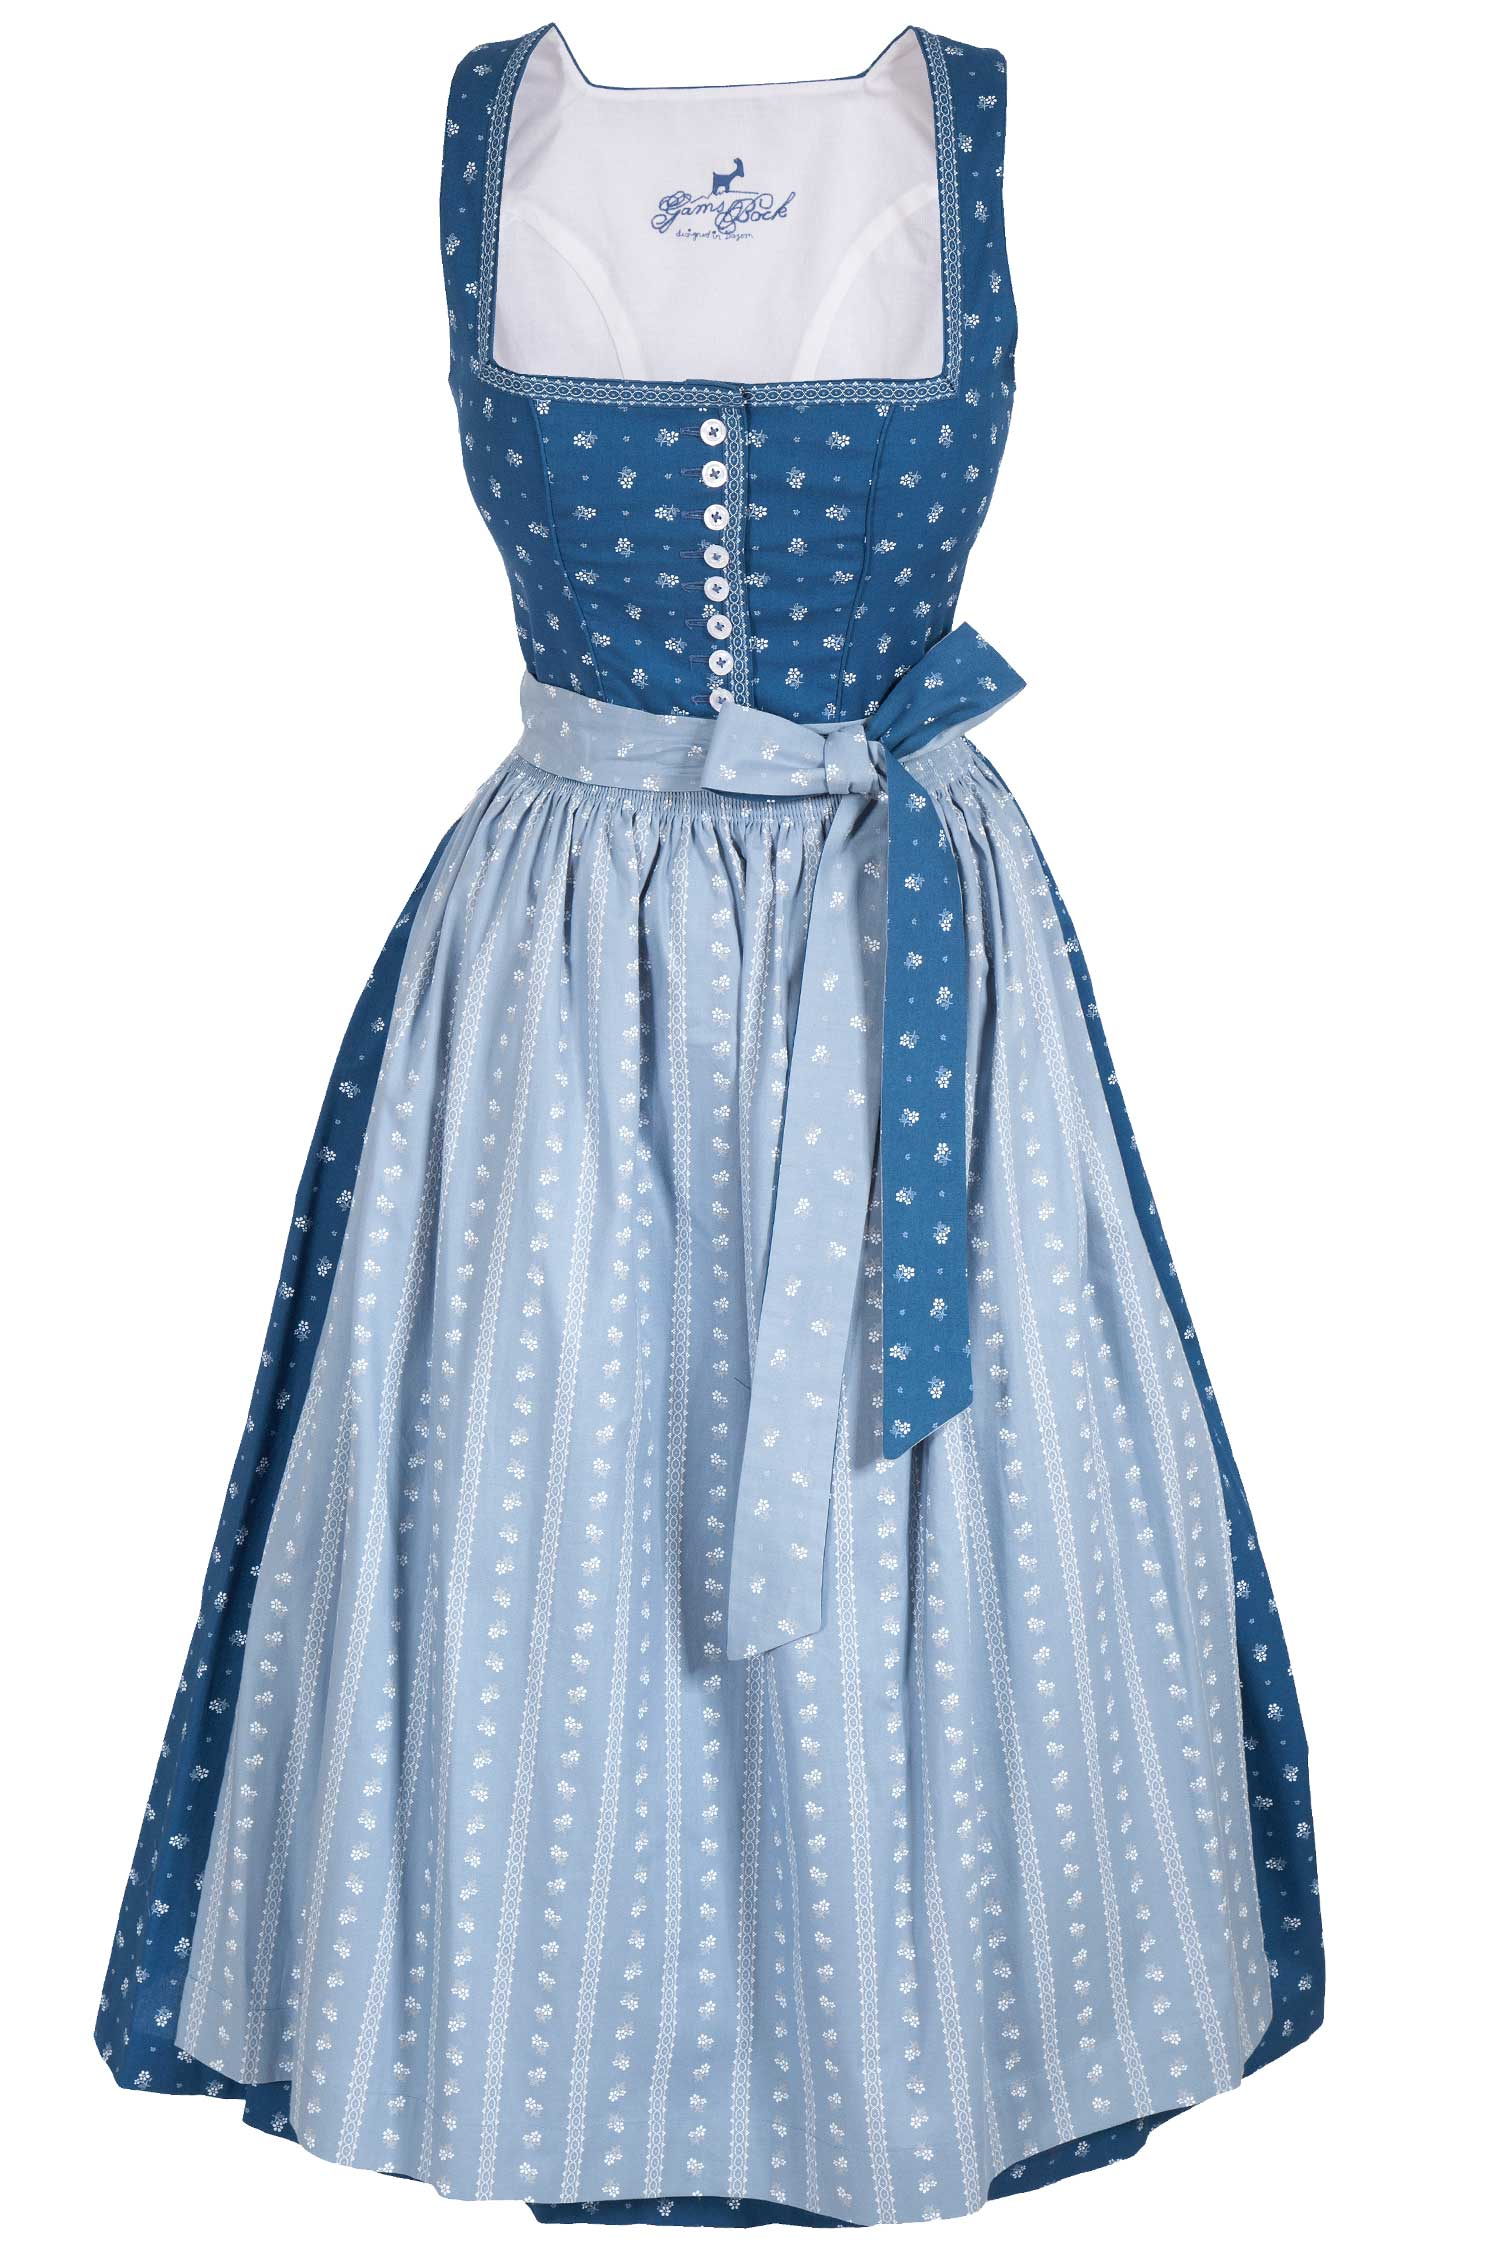 Langes Dirndl Nadia In Blau Traditionelles Baumwolldirndl